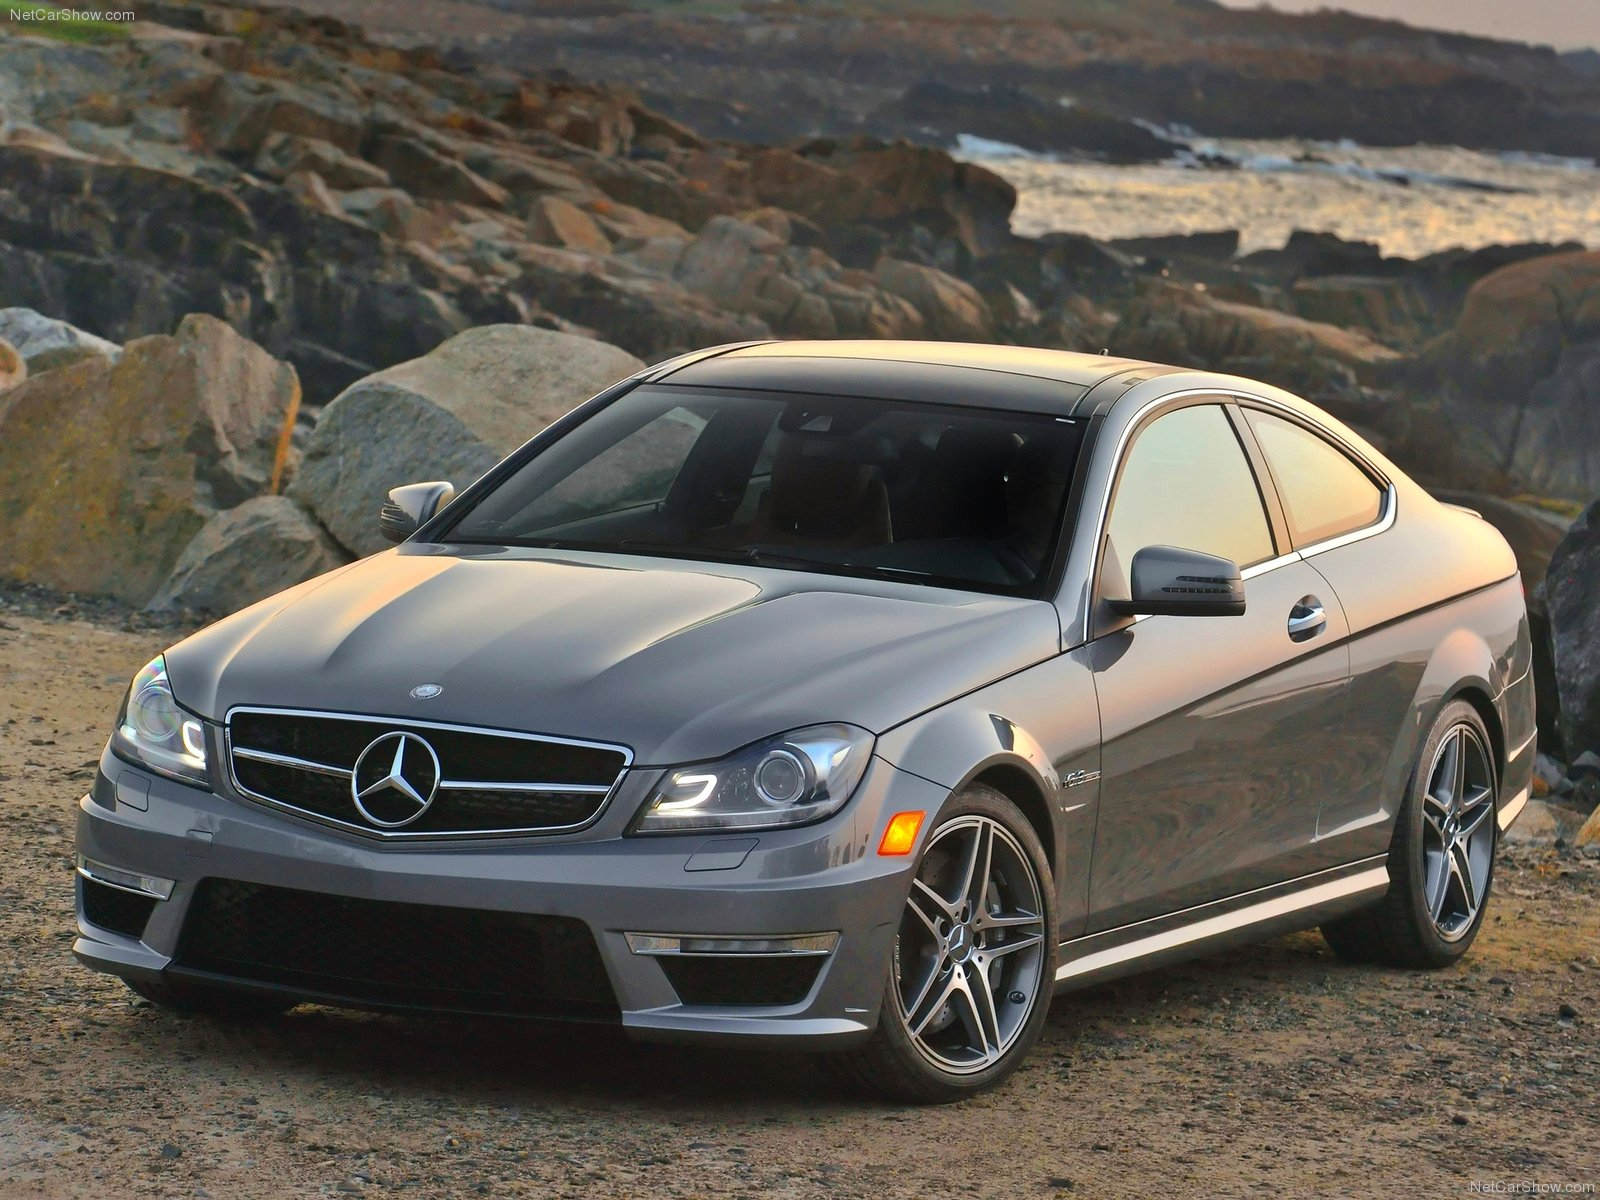 Mercedes-Benz C63 AMG Coupe photo 84570